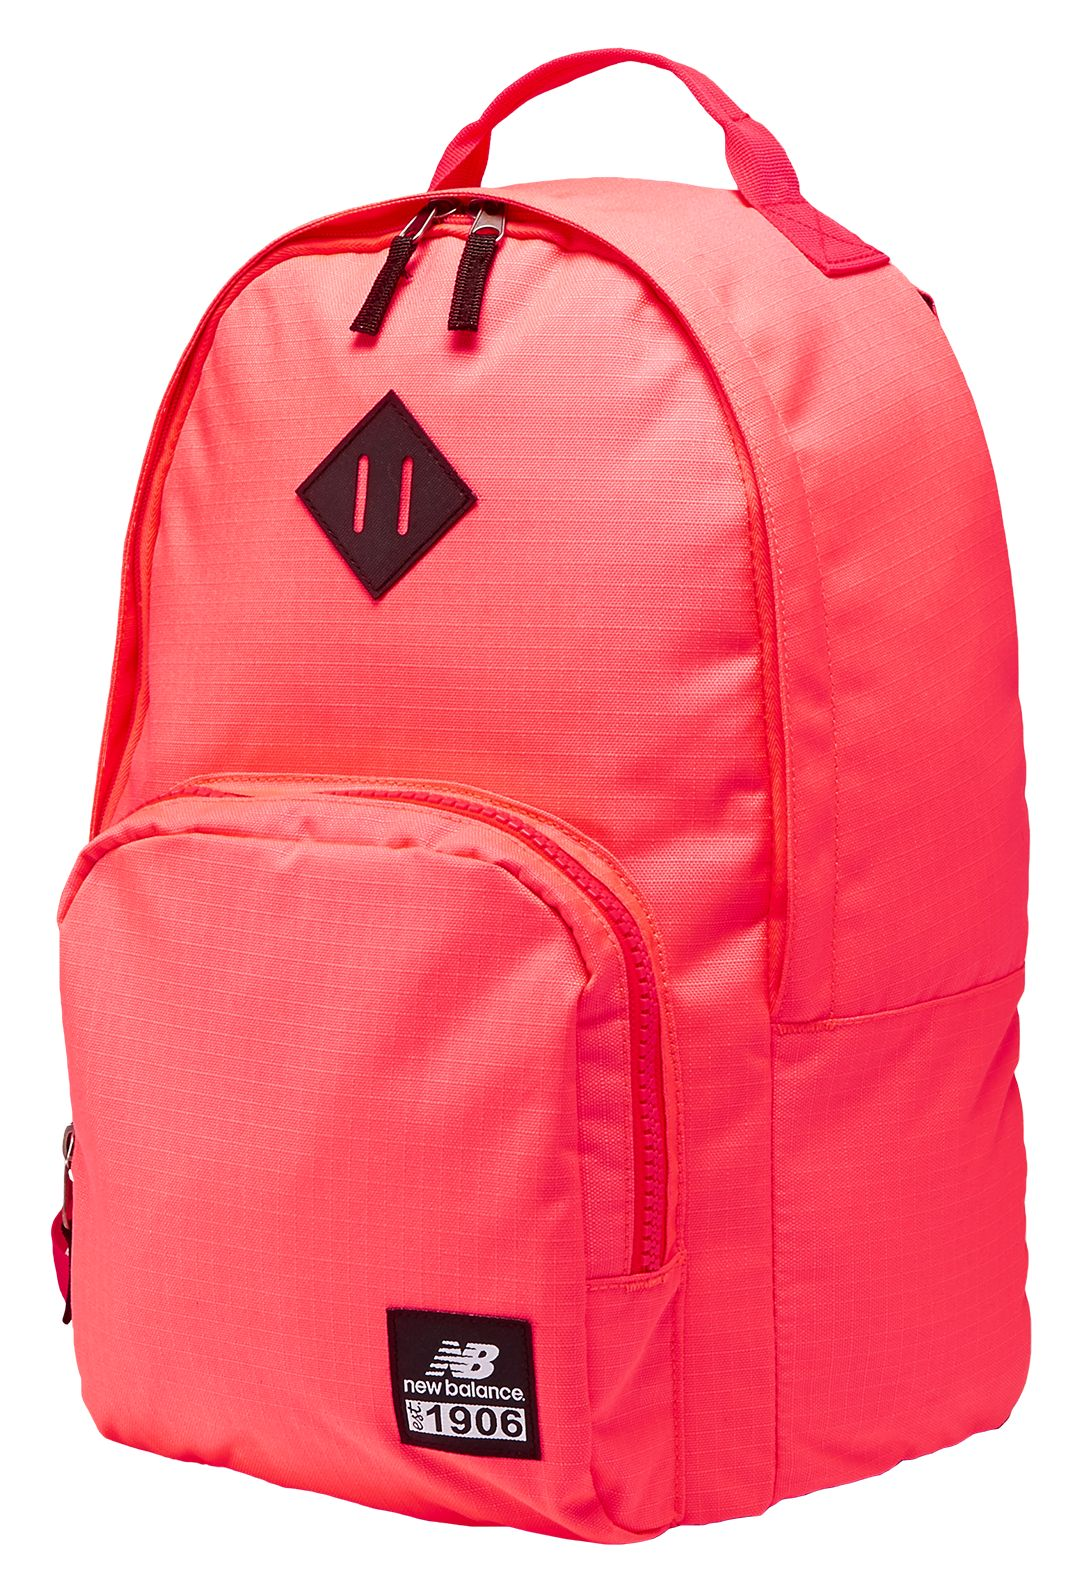 NB Daily Driver Backpack, Guava